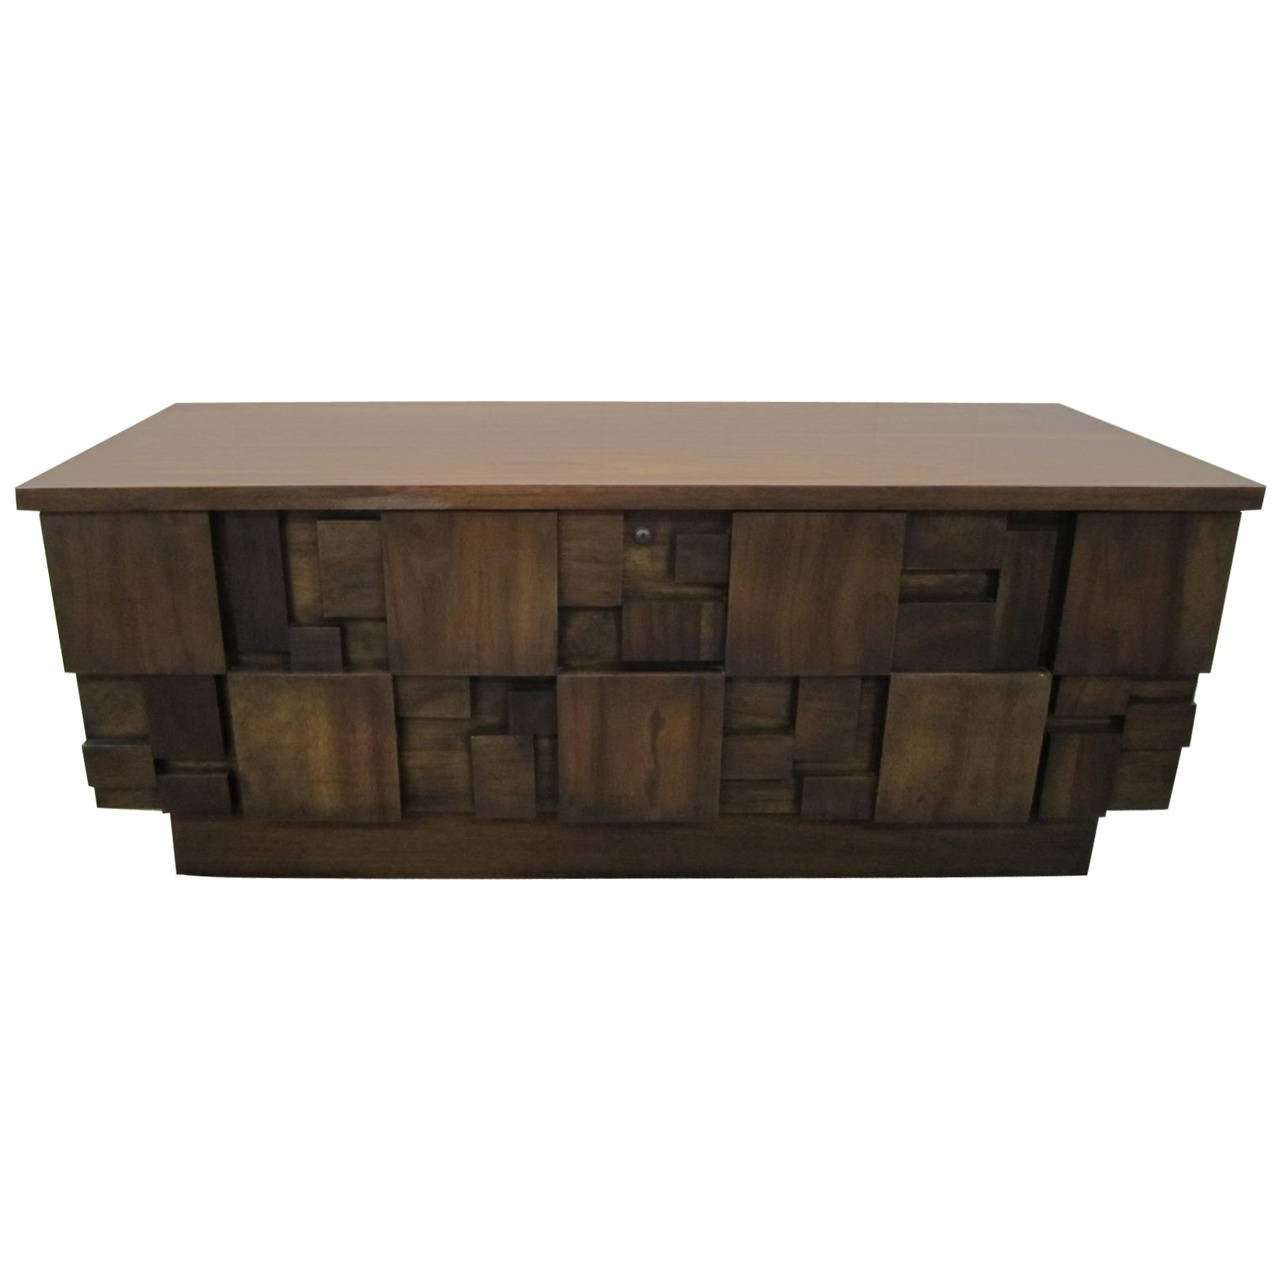 Rare Lane Brutalist Mosaic Hope Chest Paul Evans Style Mid Century Modern  For Sale